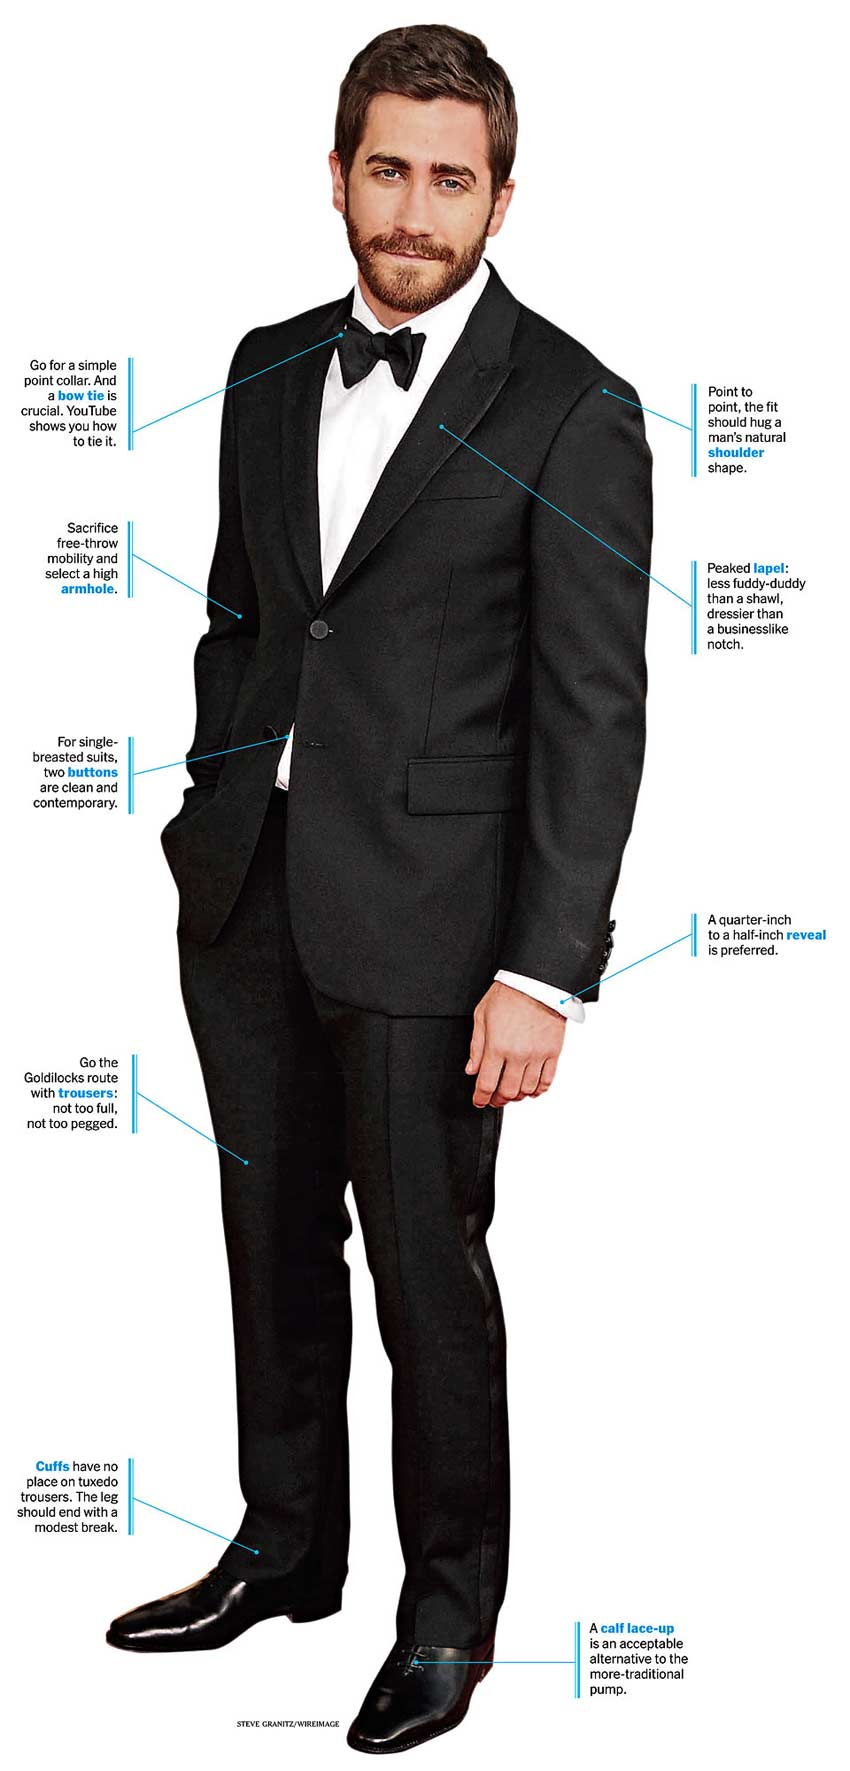 Grooms-guide-to-the-perfect-wedding-day-tux.original